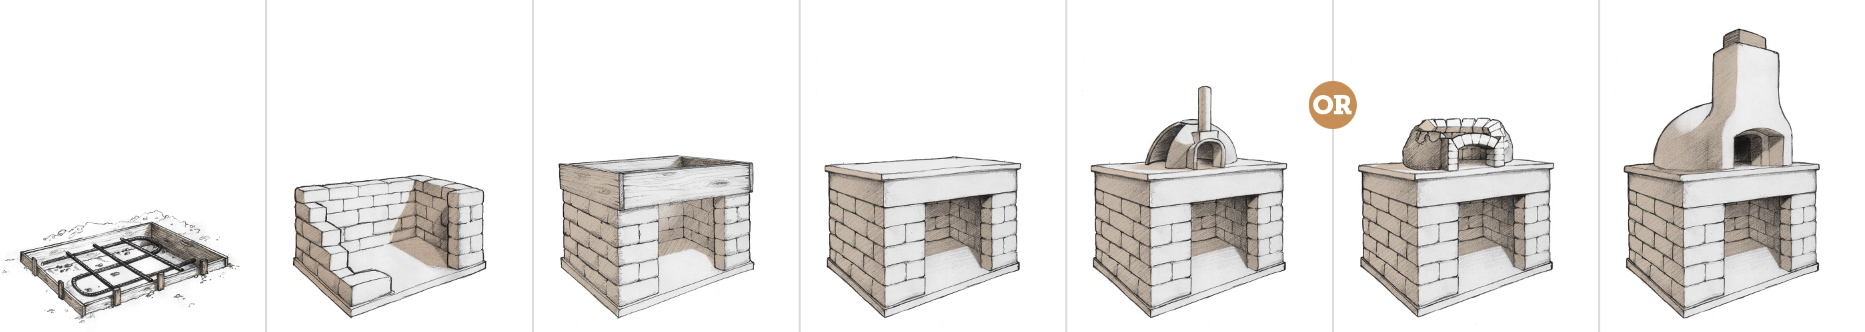 wood-fired oven project drawing